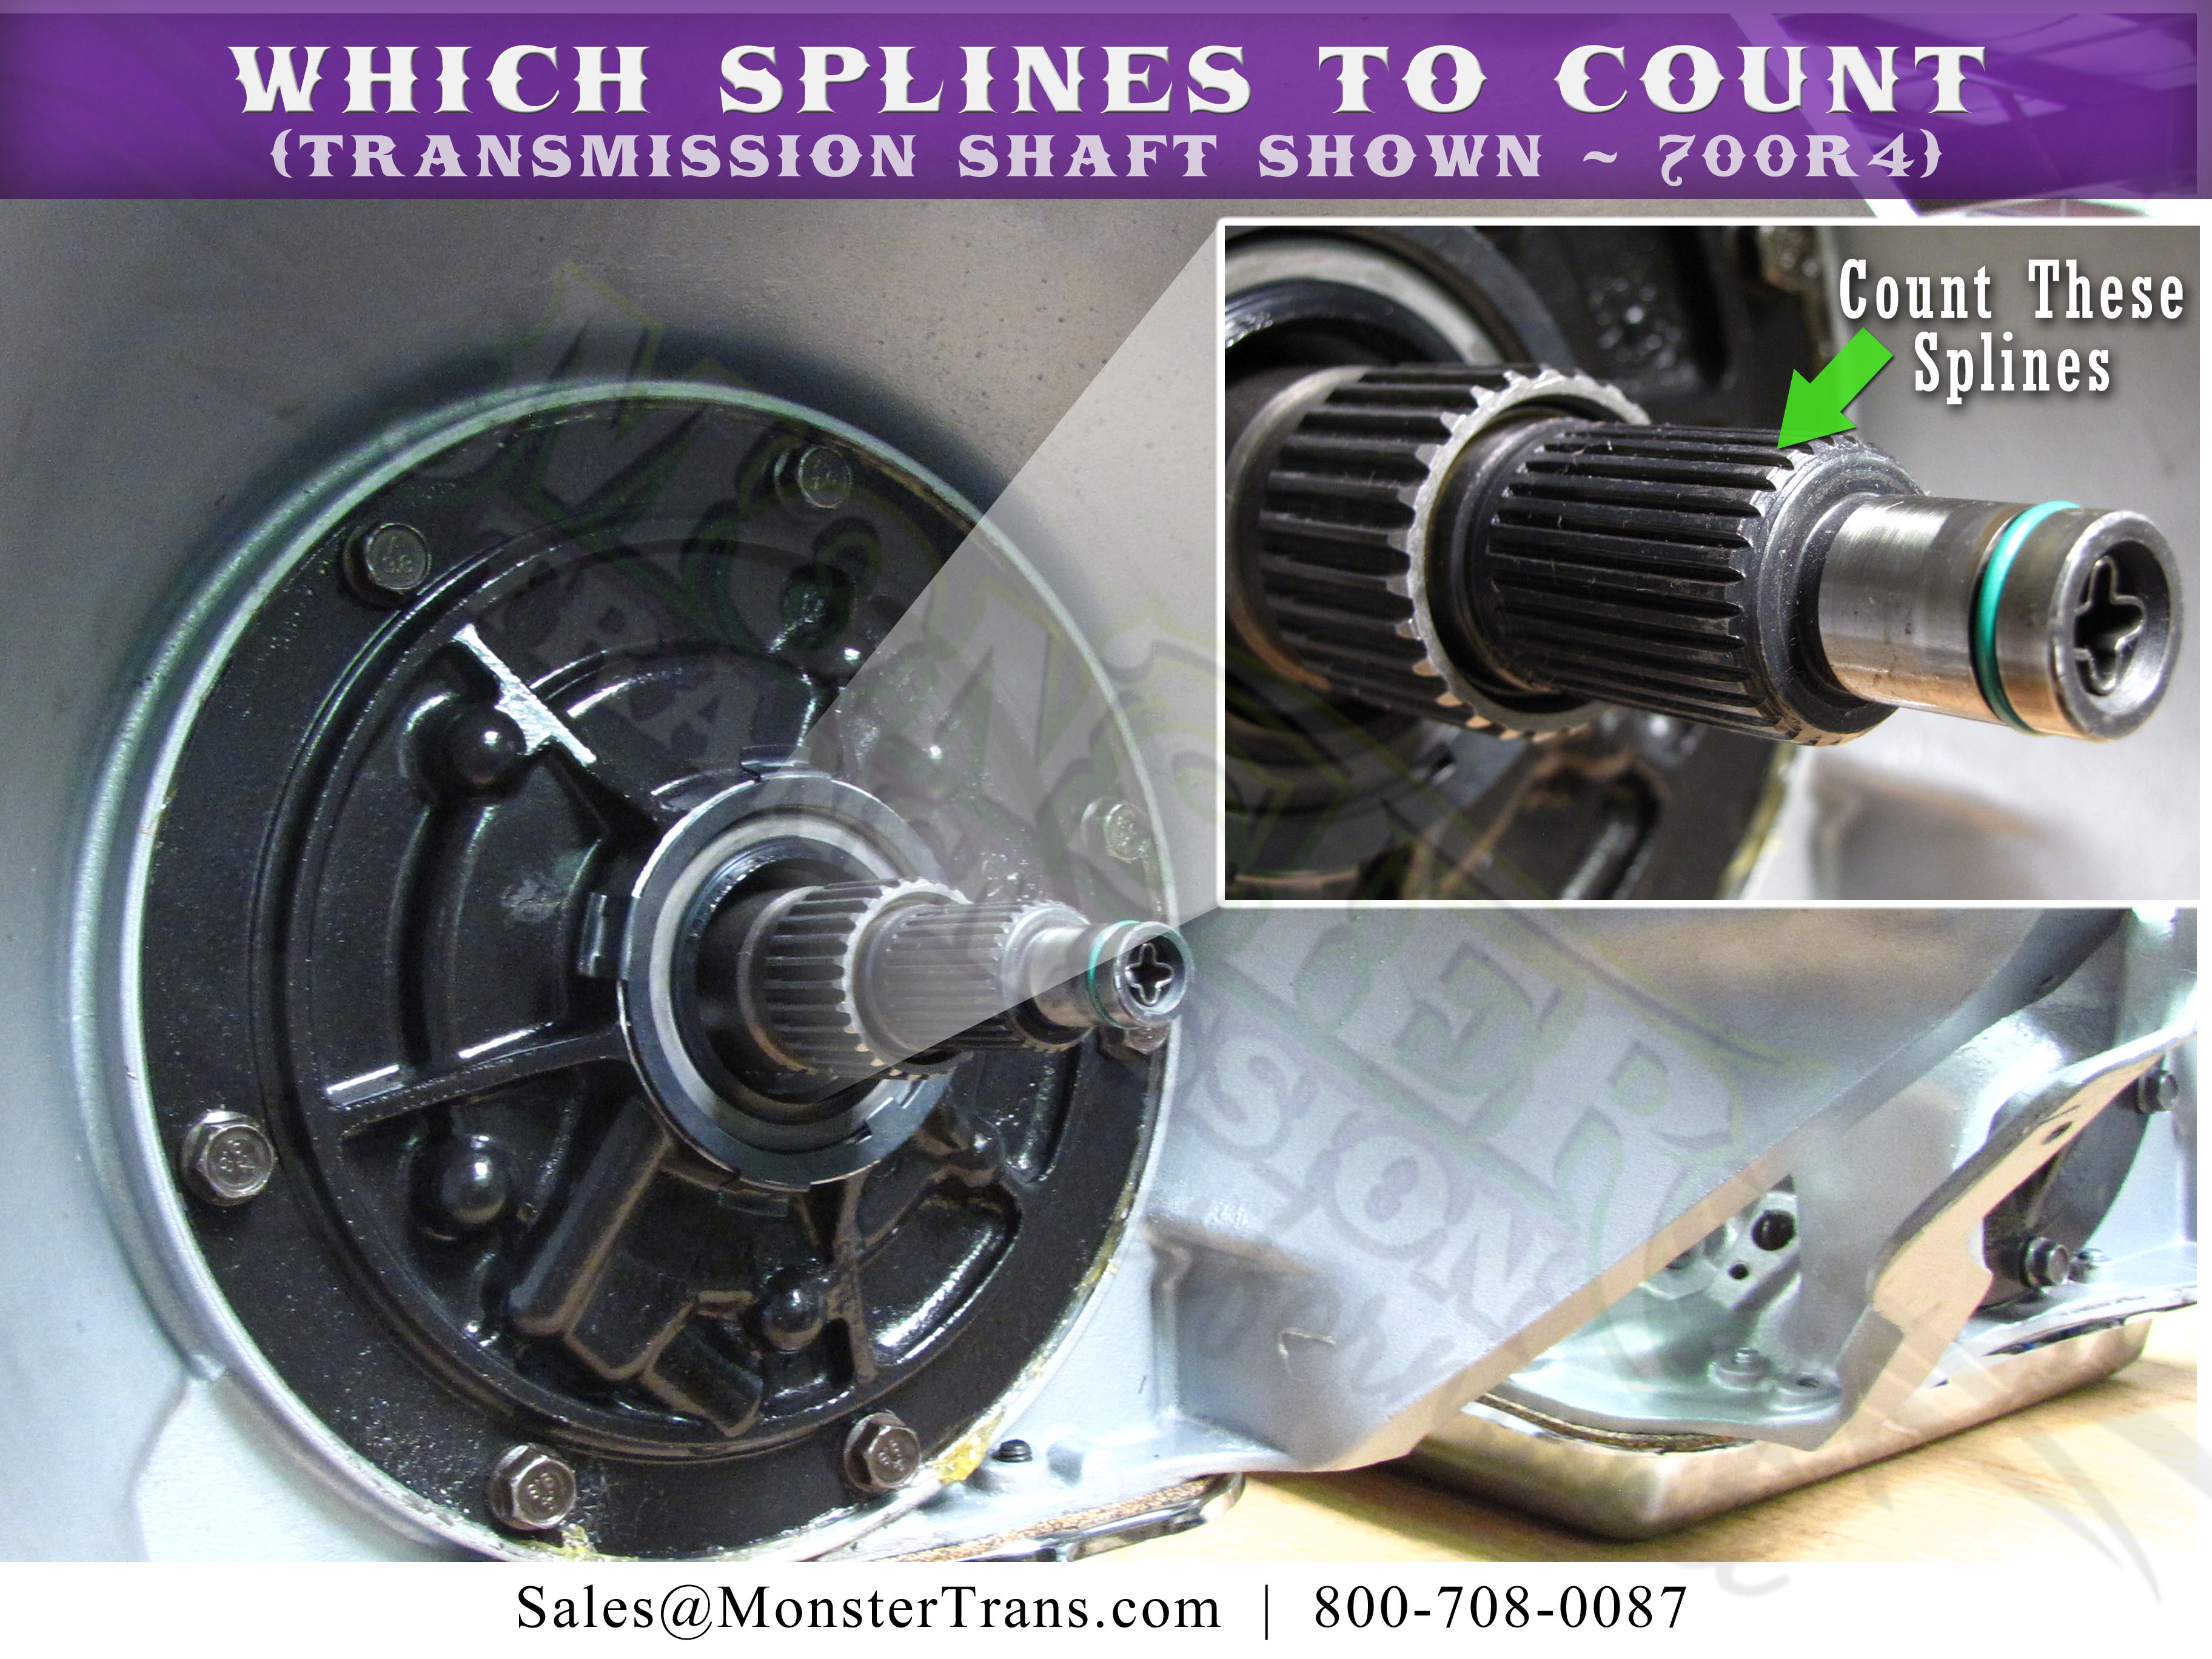 How to Count the Transmission Shaft Splines on a 700R4